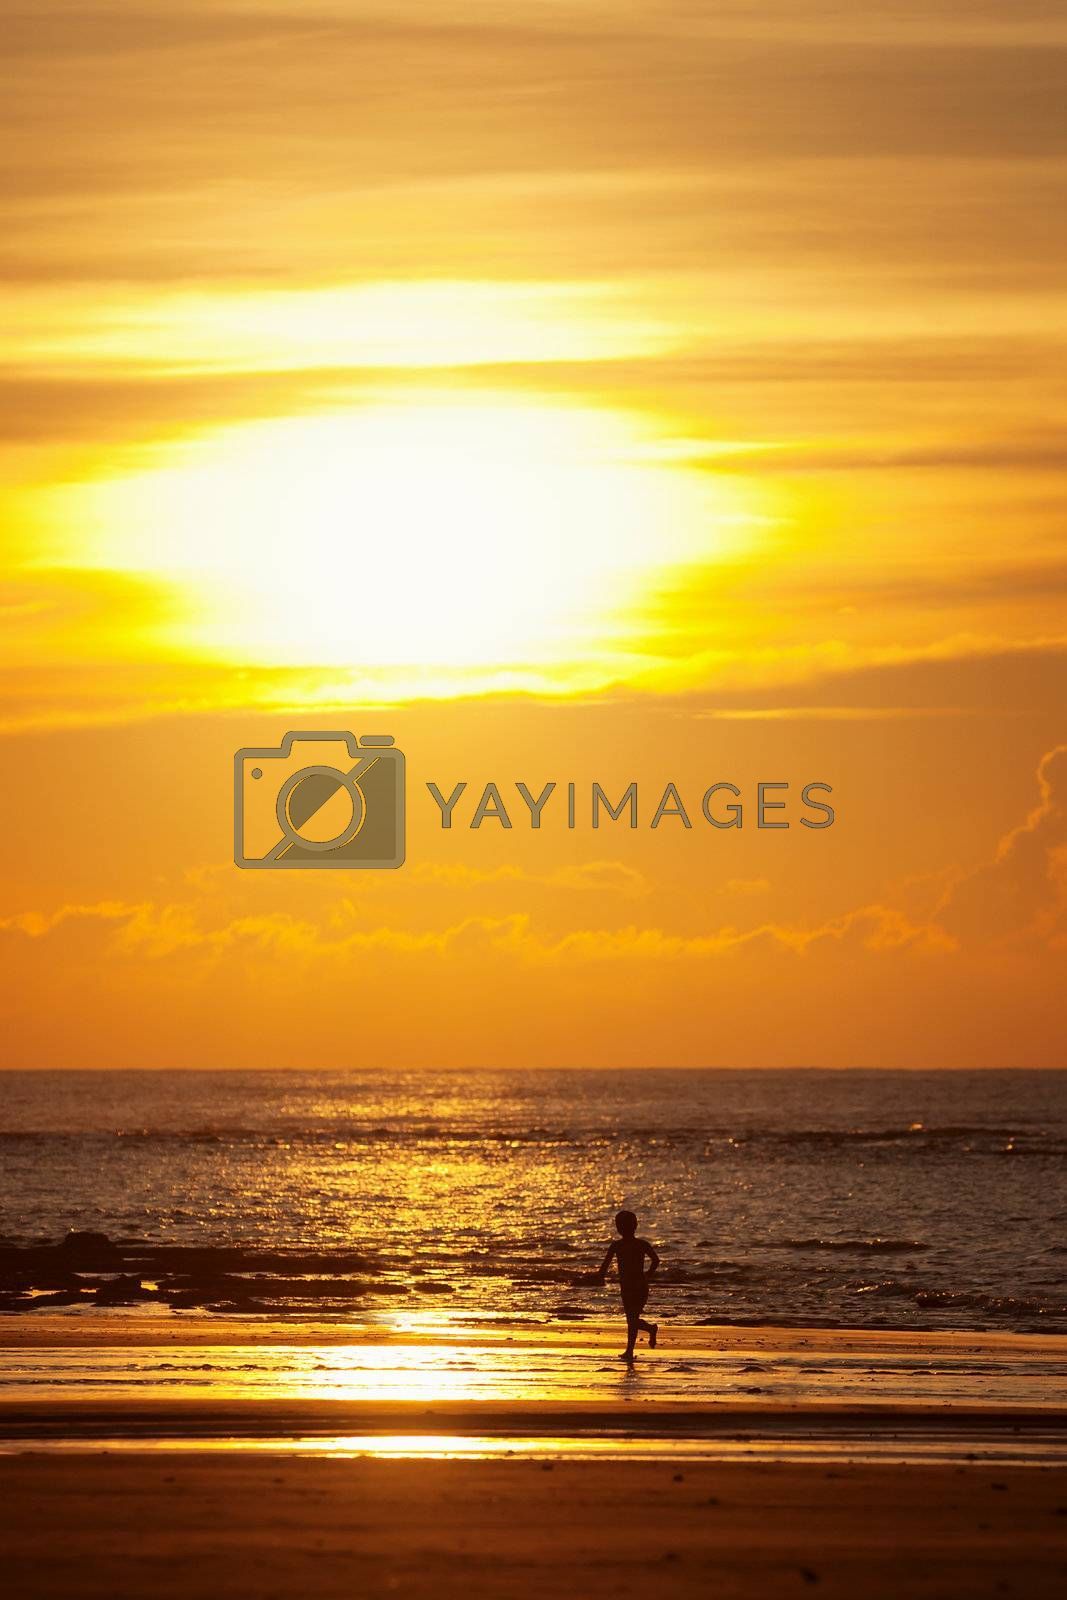 Sunset on a tropical beach and silhouette of a kid